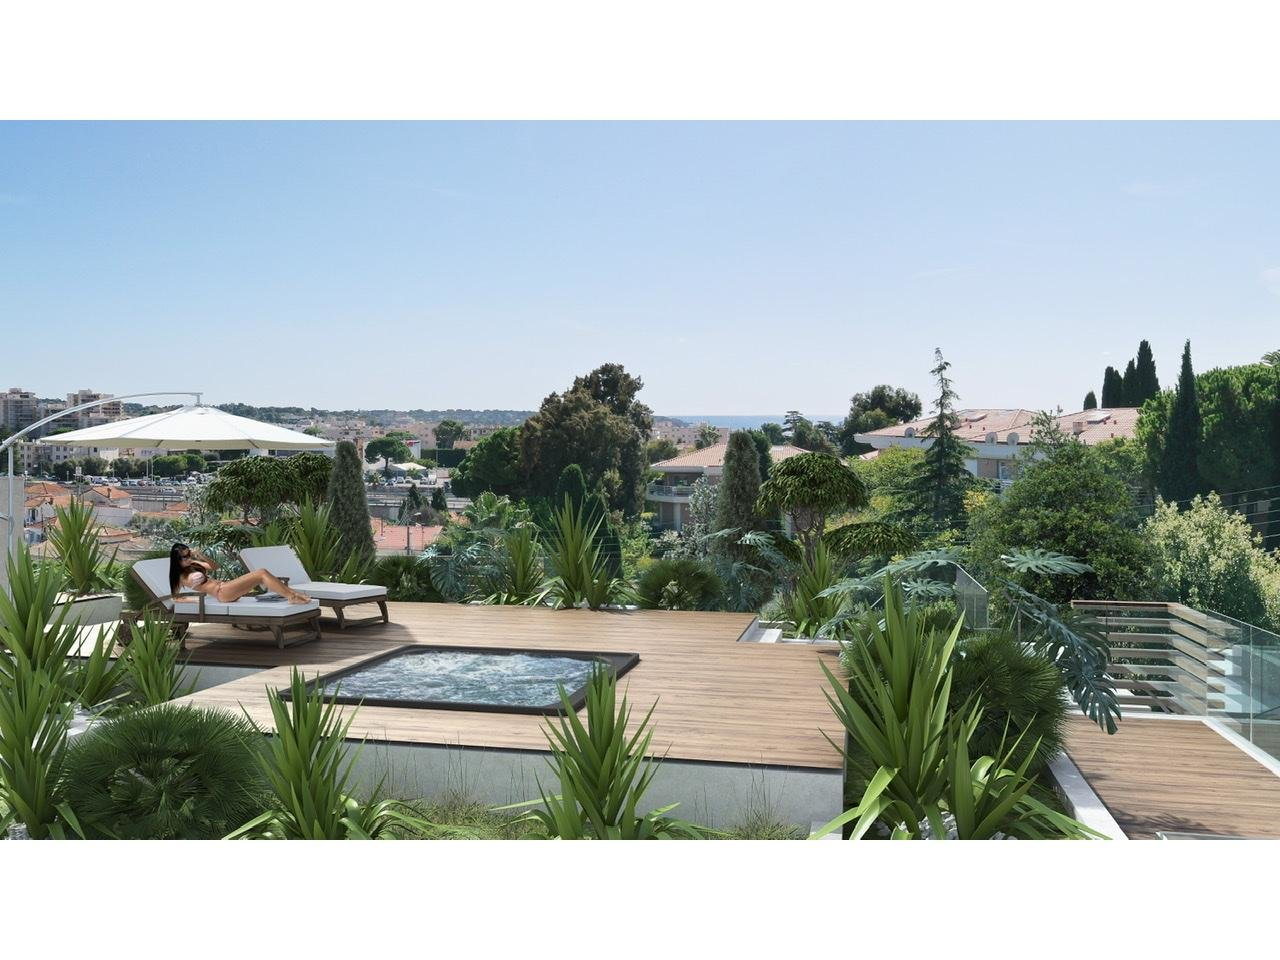 Appartement  3 Rooms 63.51m2  for sale   490 000 €